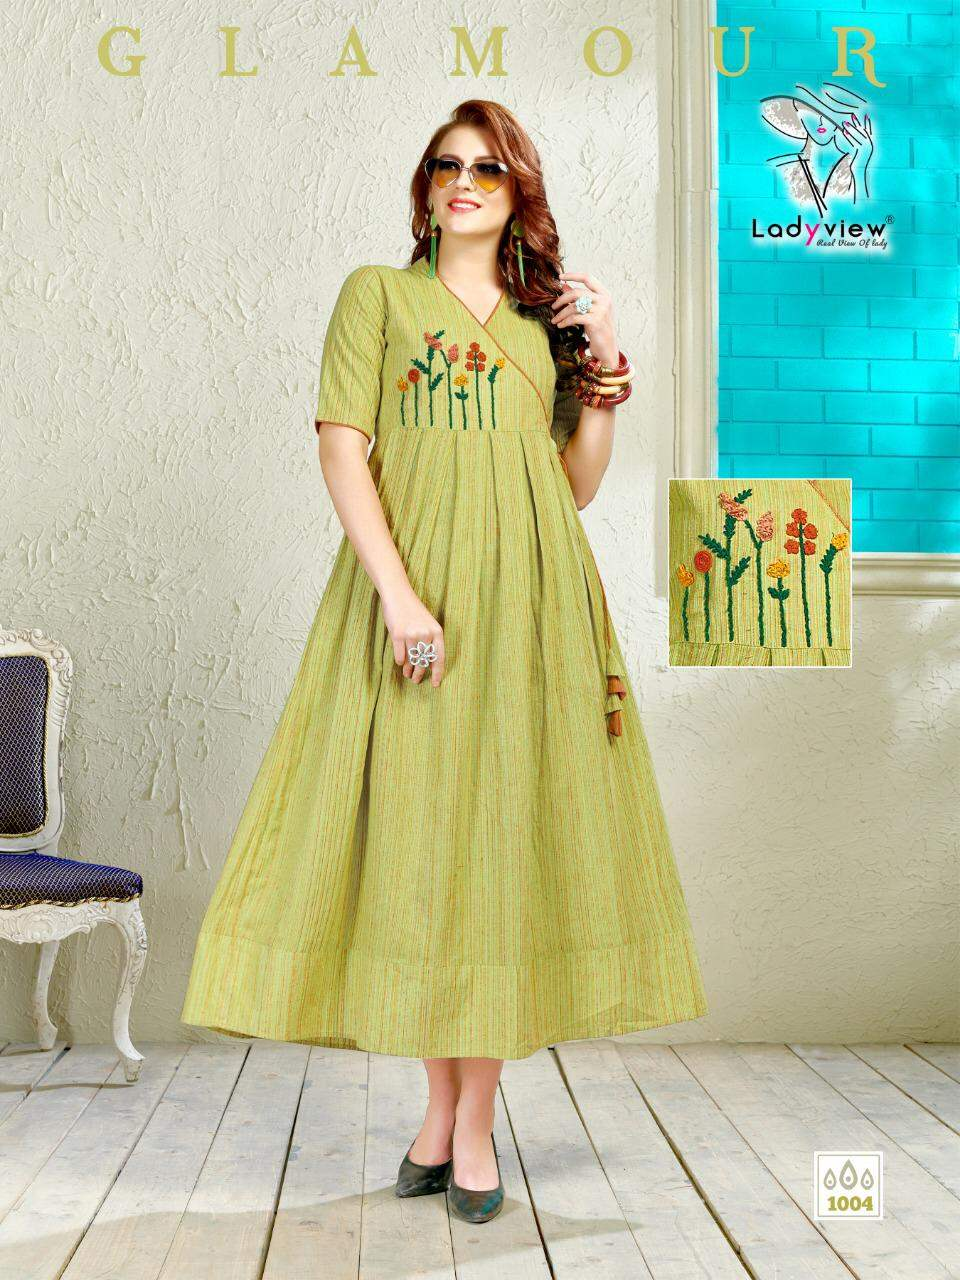 Ladyview Mango Dolly collection 3